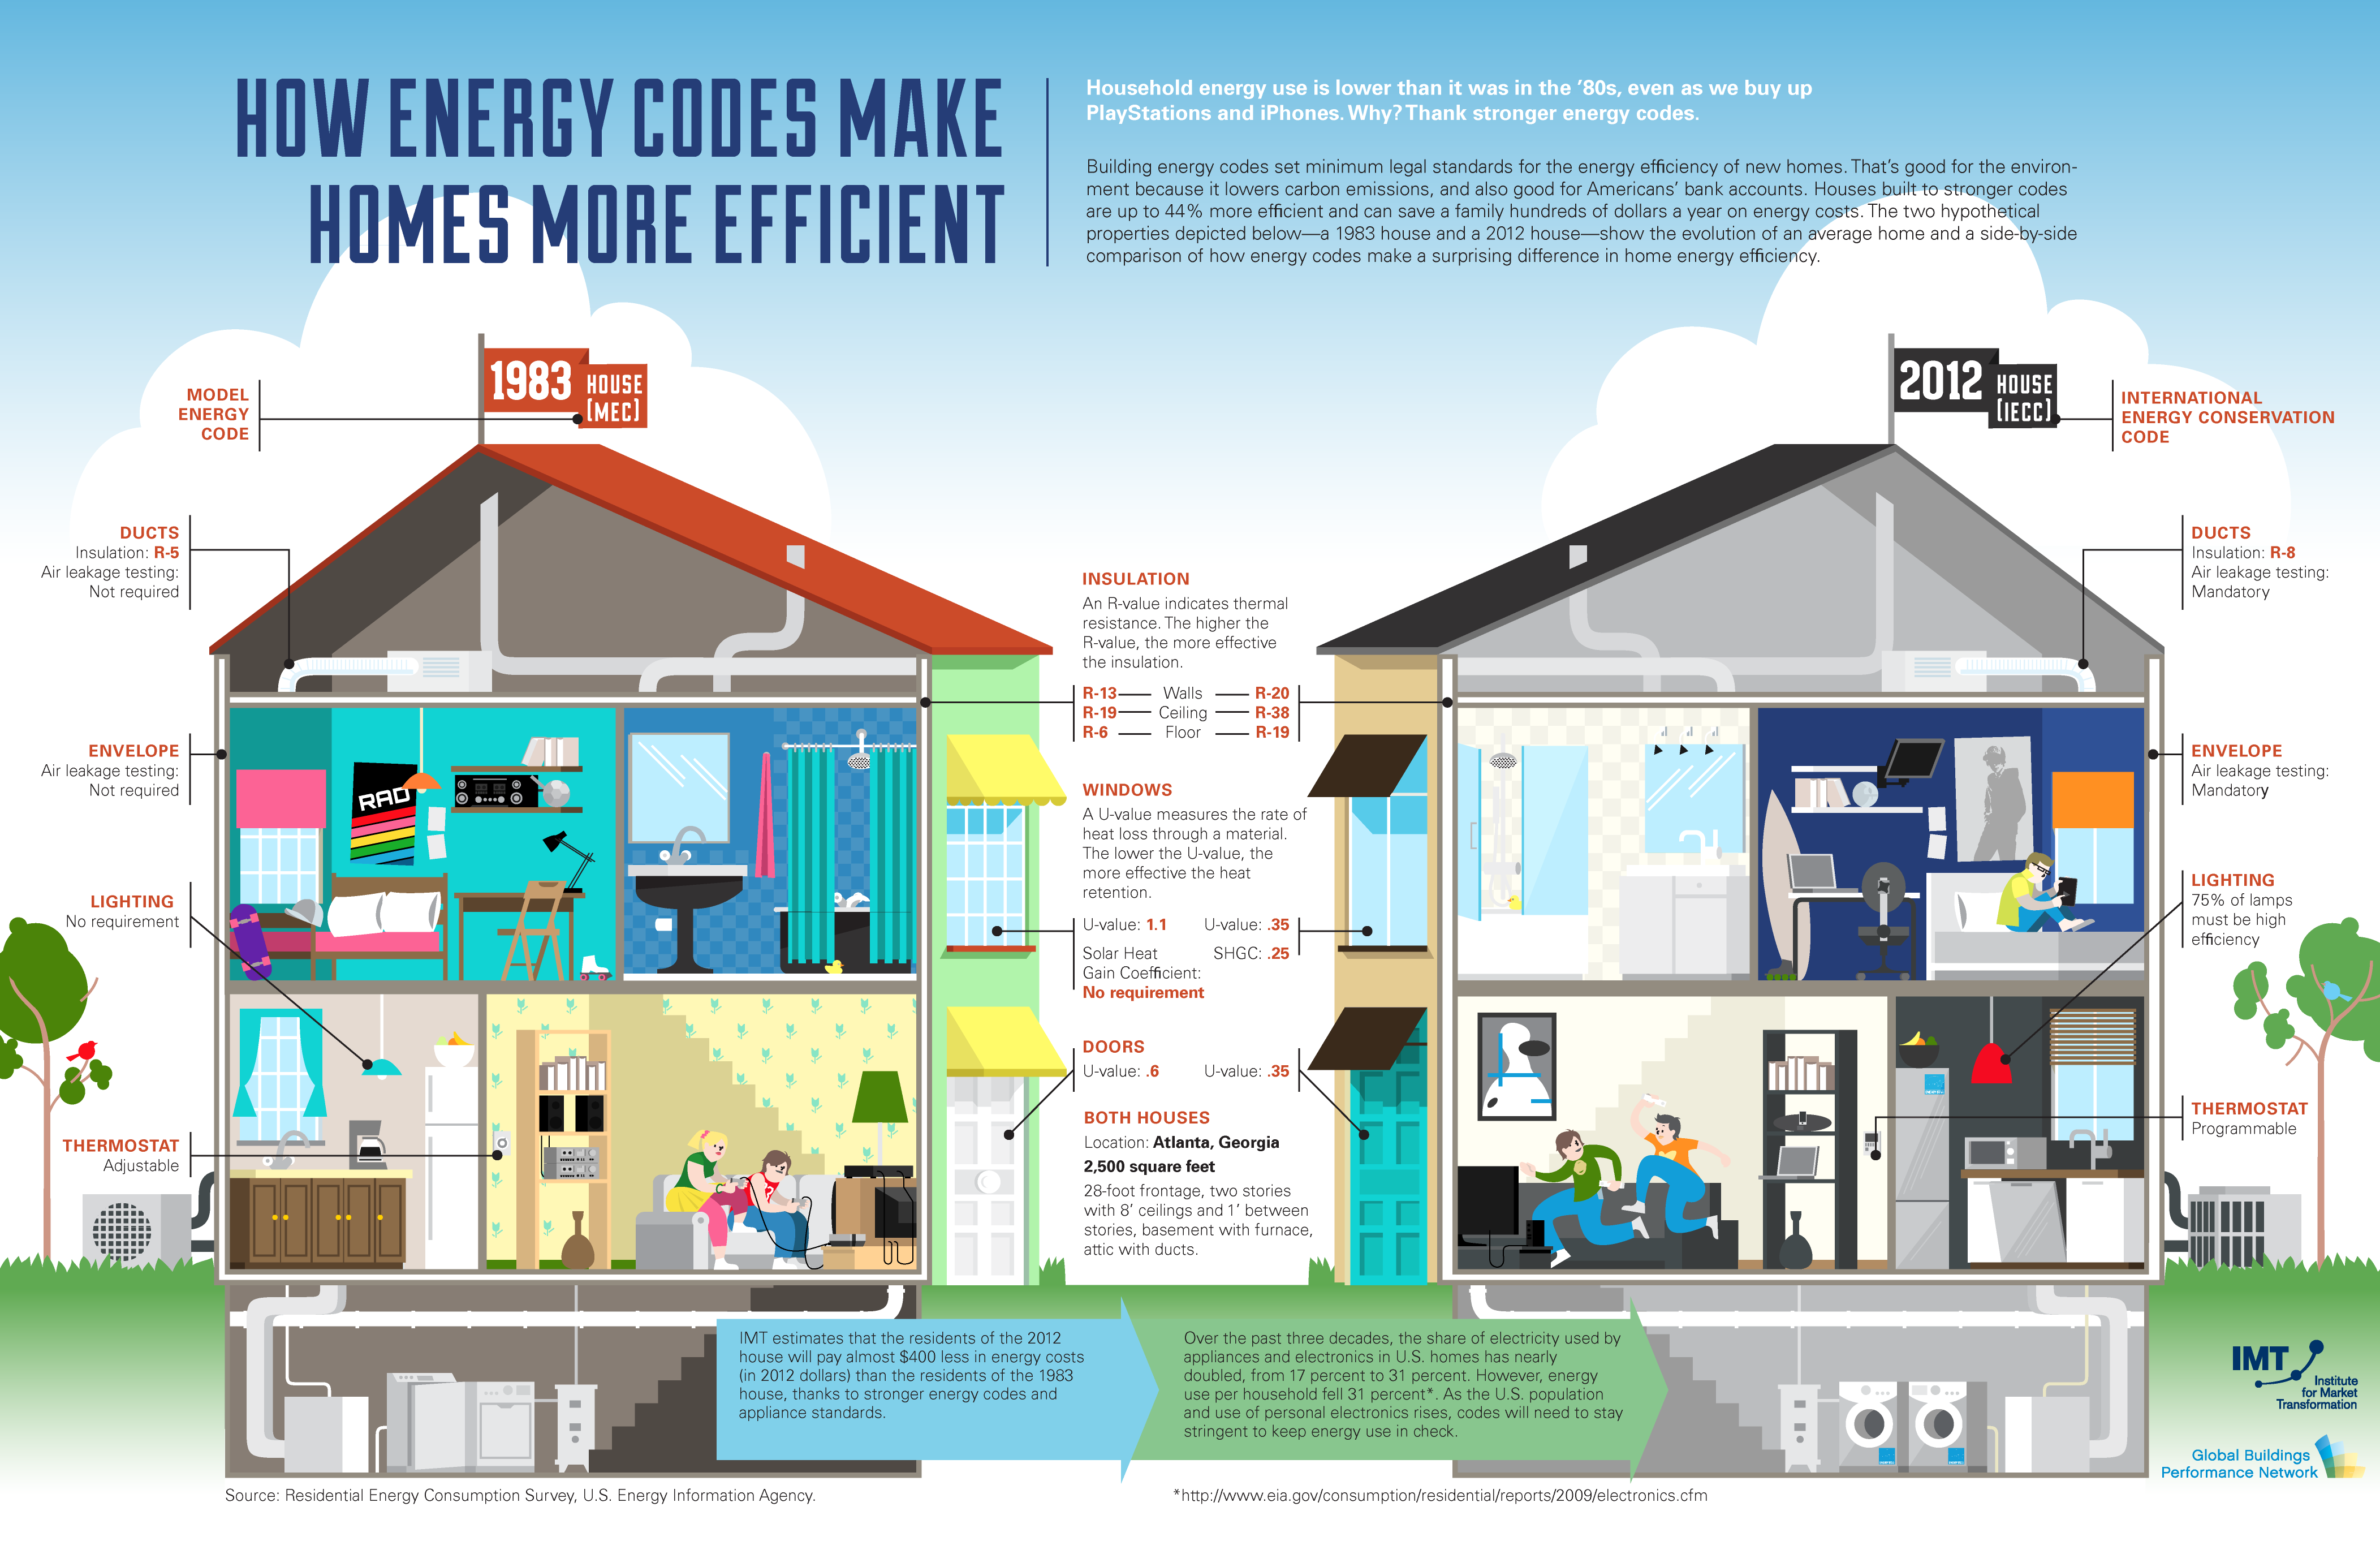 How Energy Codes Make Homes More Efficient